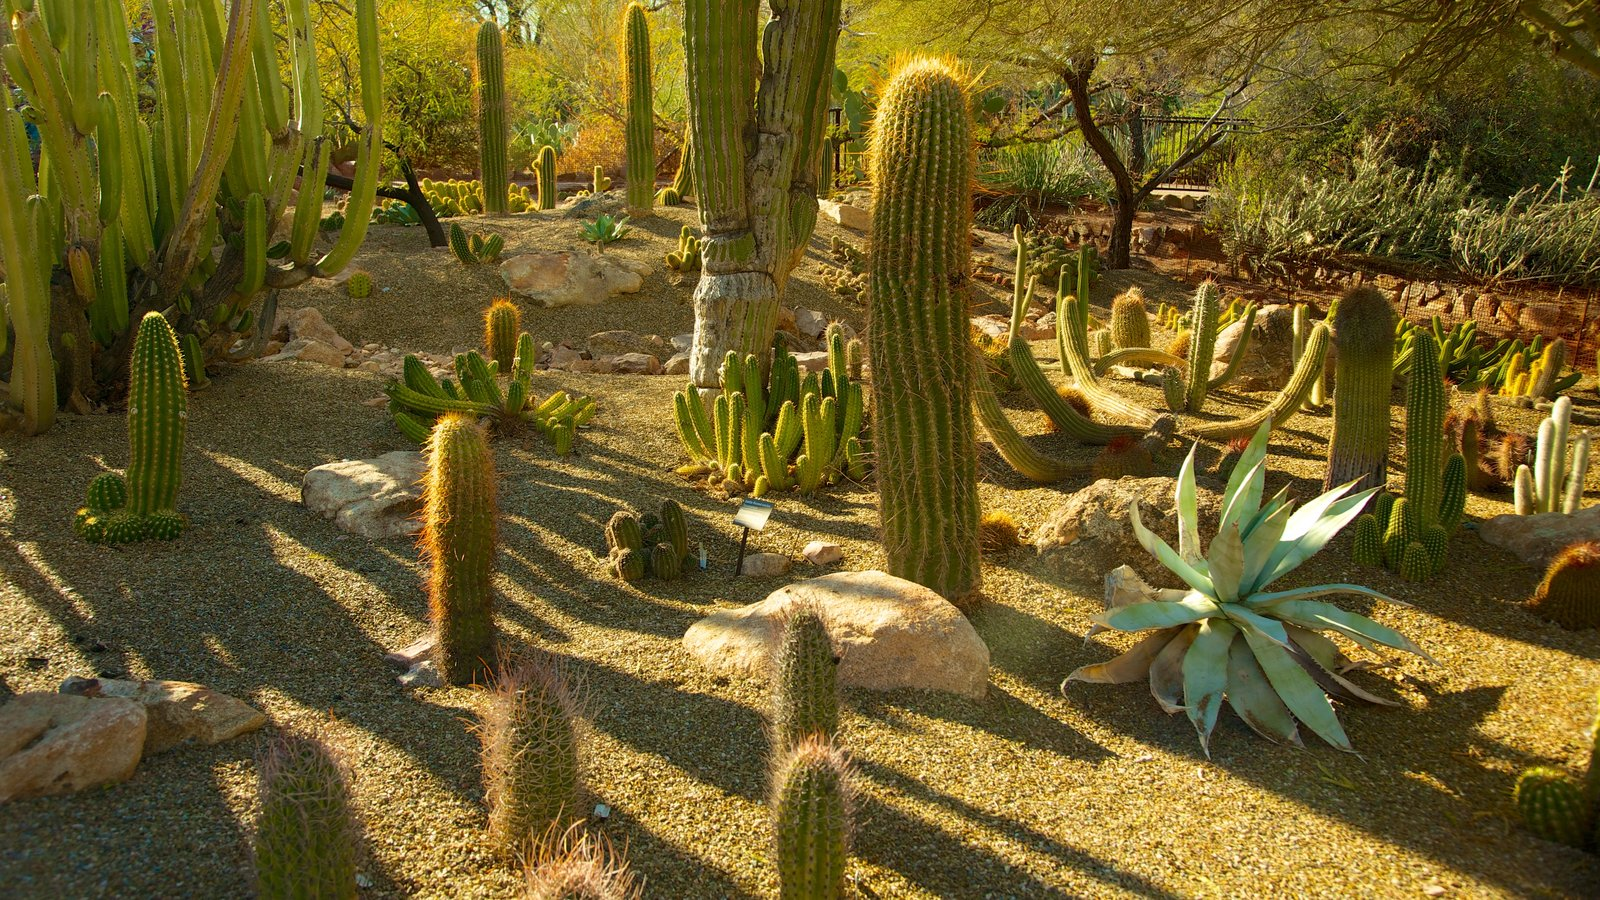 Desert Botanical Garden Pictures: View Photos & Images of Desert ...